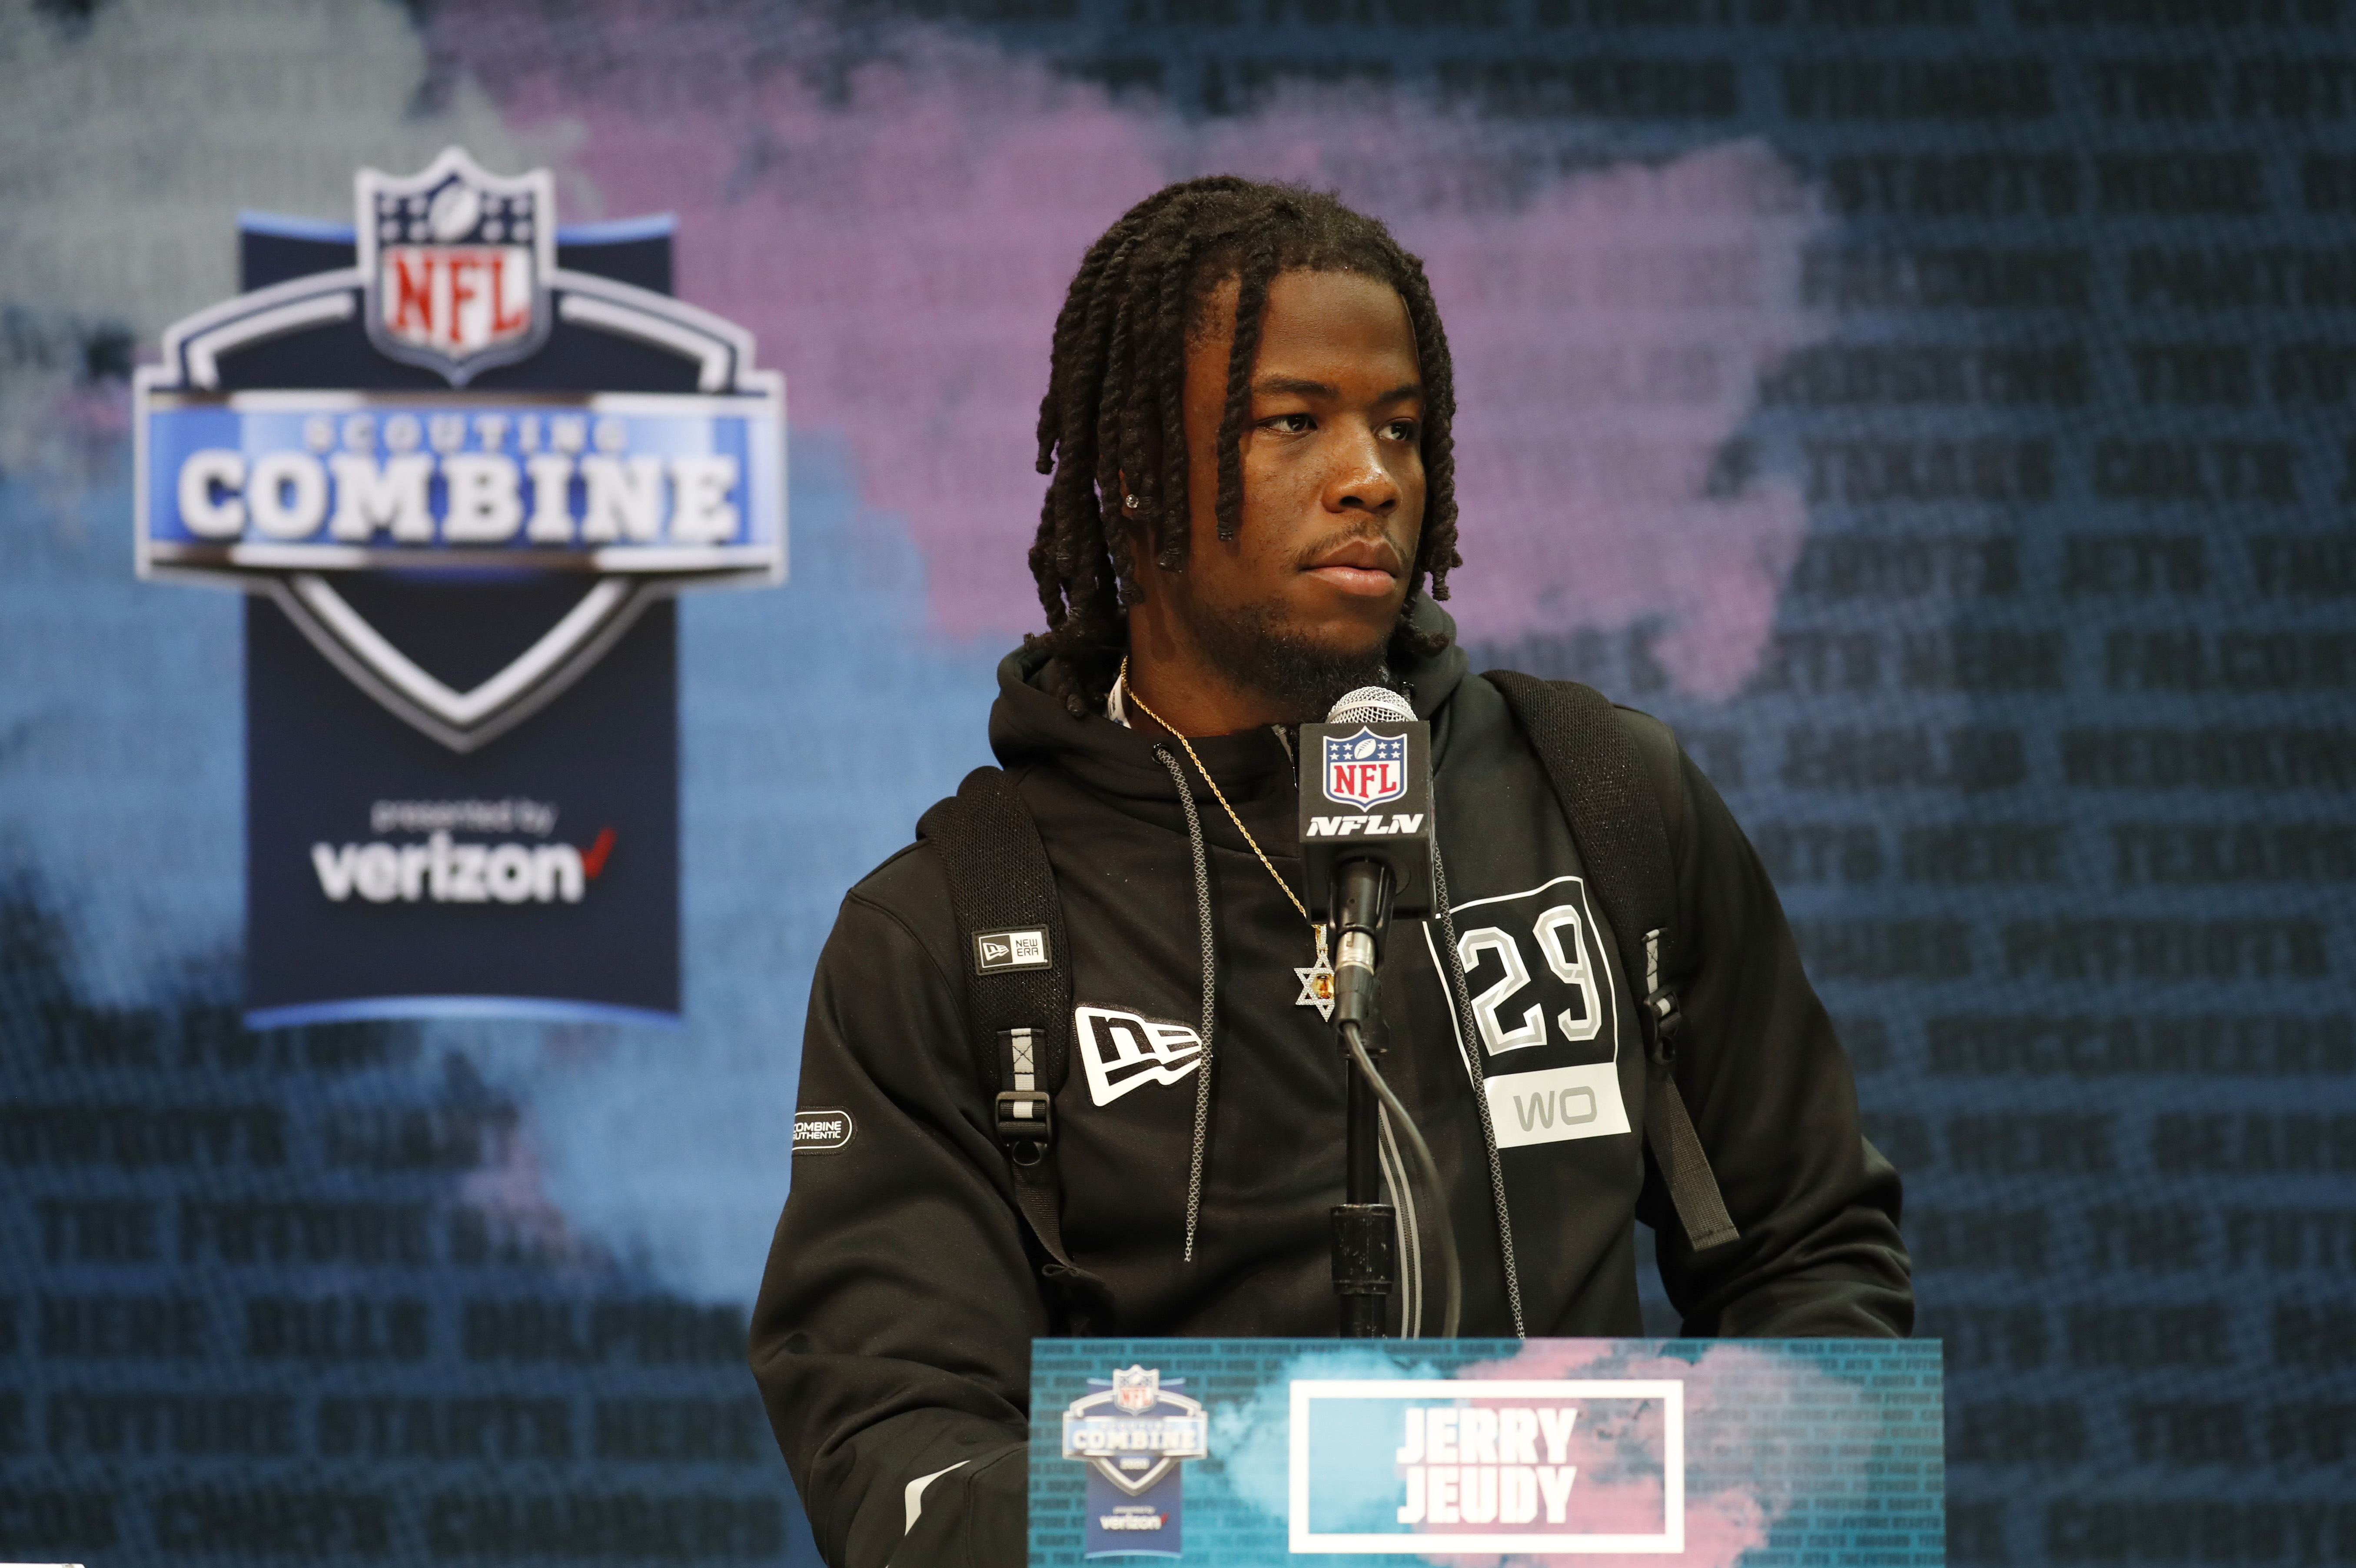 New York Jets Management Hail Wide Receivers at the NFL Combine Led by Jerry Jeudy, CeeDee Lamb